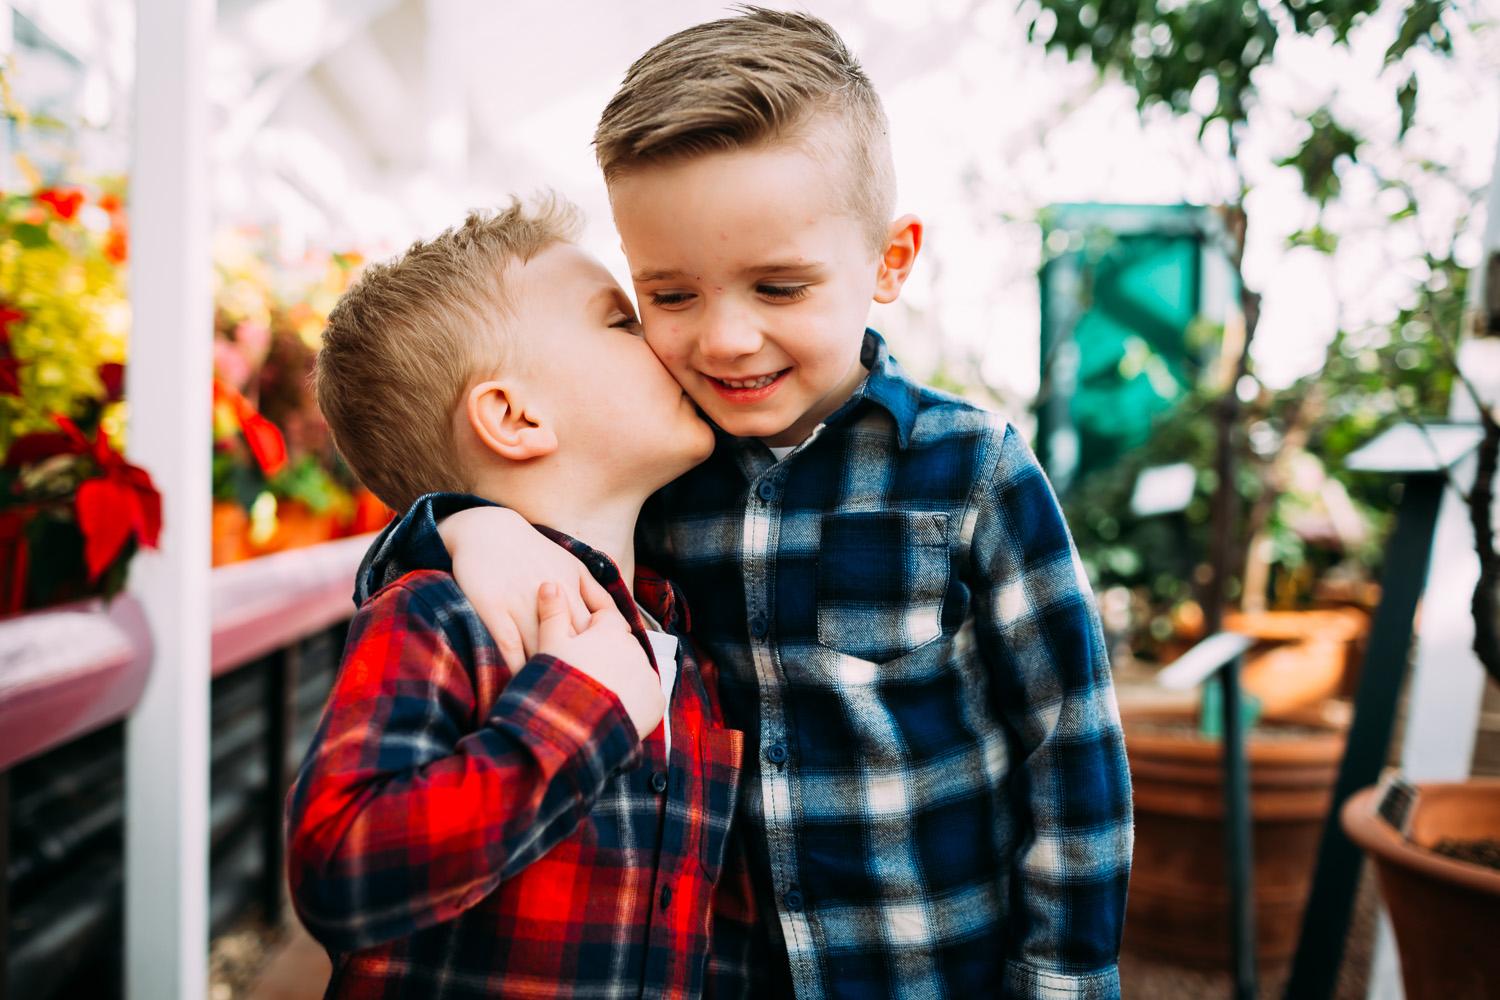 two brothers under 5s hugging and kissing each other in plaid shirts